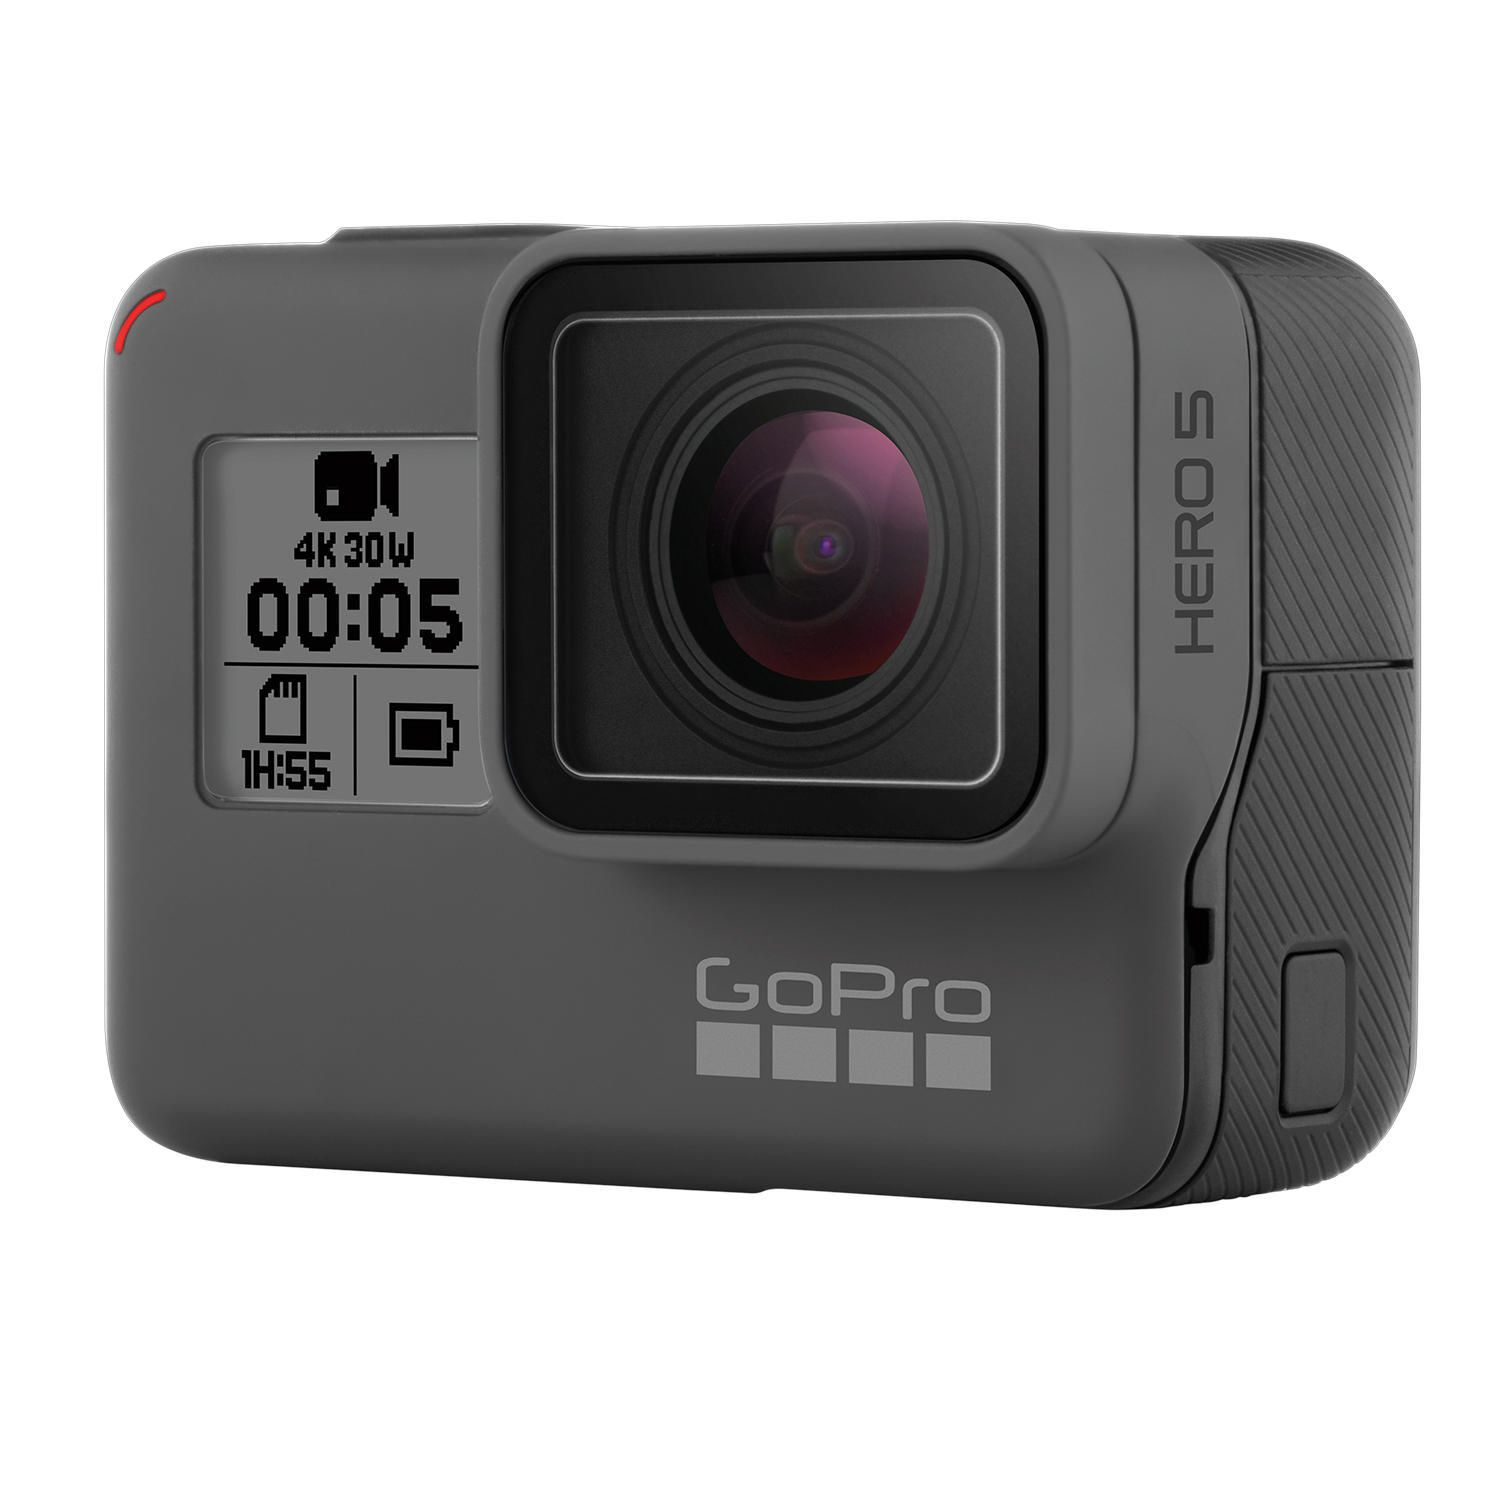 Camera Cameras For Sale At Walmart shop online for cameras and drones walmart ca gopro hero5 black 4k video recorder